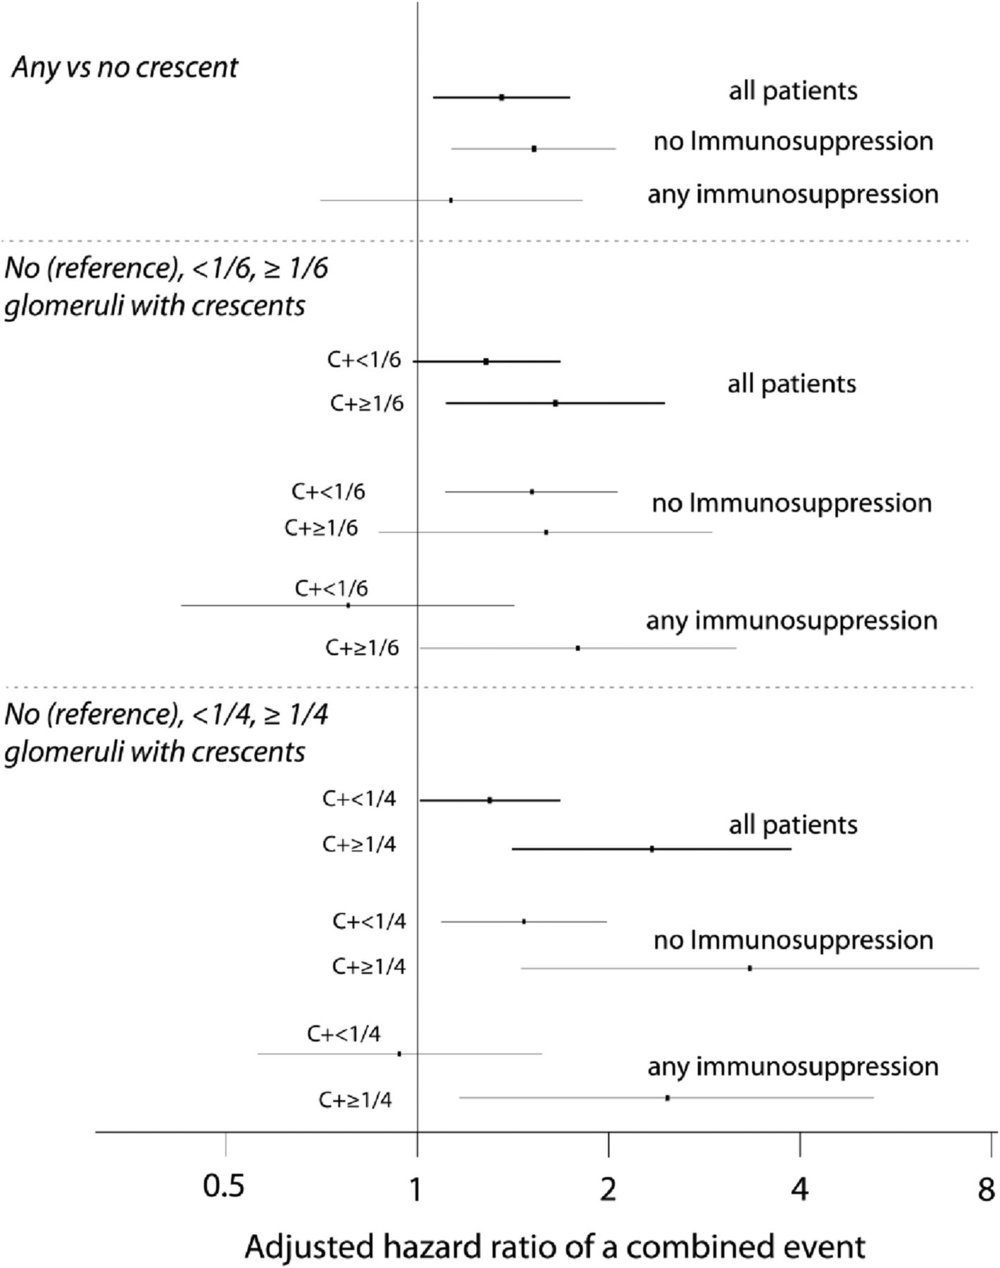 Figure 5   Adjusted HRs of a combined event using different fractions of glomeruli with crescents in all patients, patients not receiving immunosuppression, and those receiving immunosuppression. HRs are in reference to no crescents and adjusted for the MEST scores, initial eGFR, and time-averaged MAP and proteinuria. C+, with crescents.